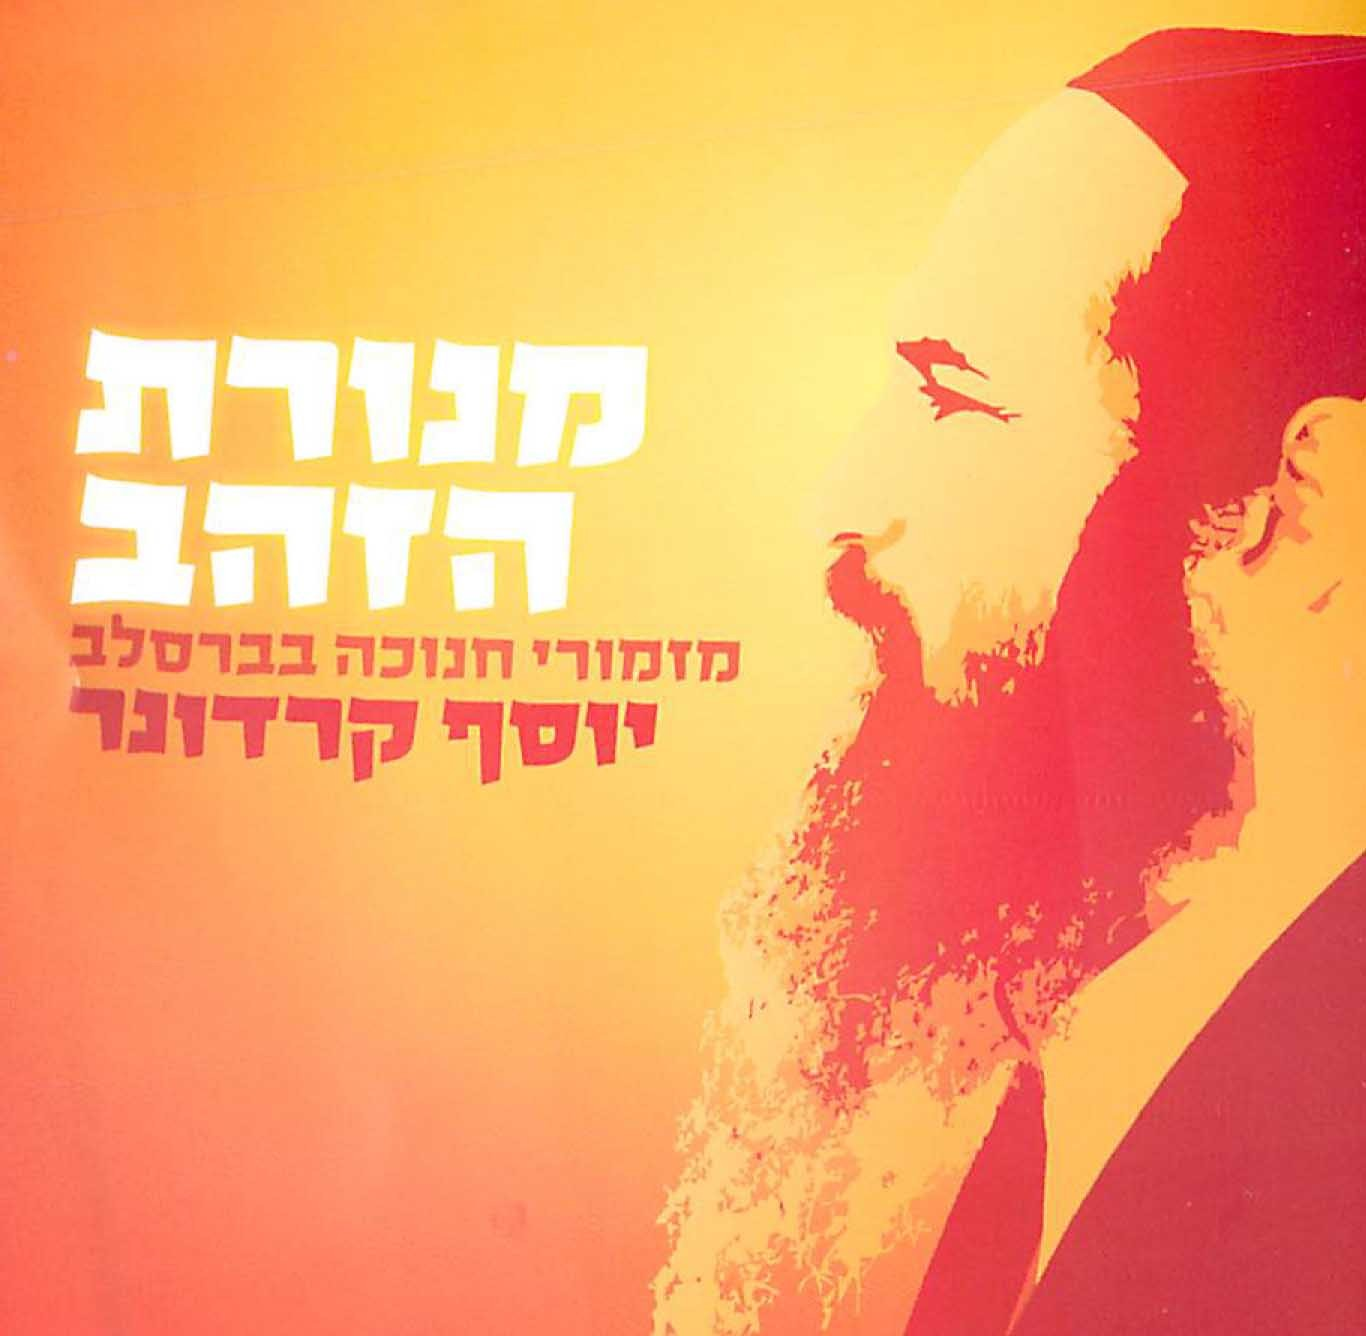 Yosef Karduner - Menorat Hazahav (The Golden Menorah) (2013)